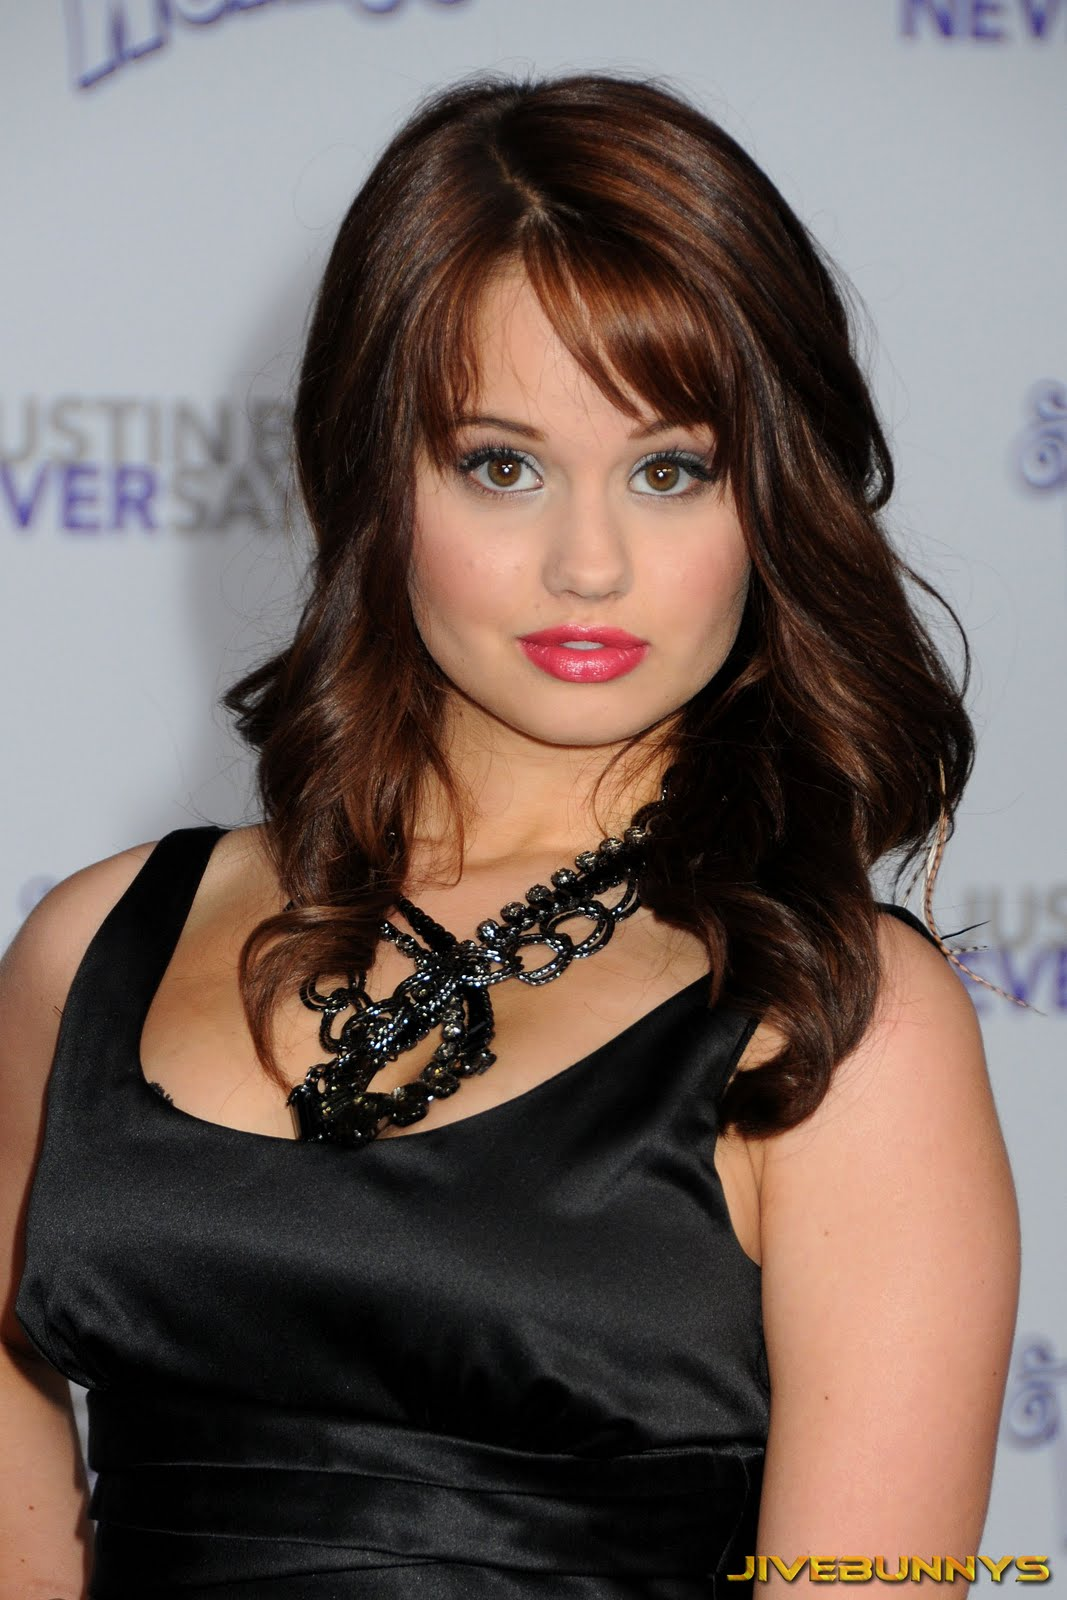 Debby Ryan Picture Reviewed By John Sent On Rating: 45